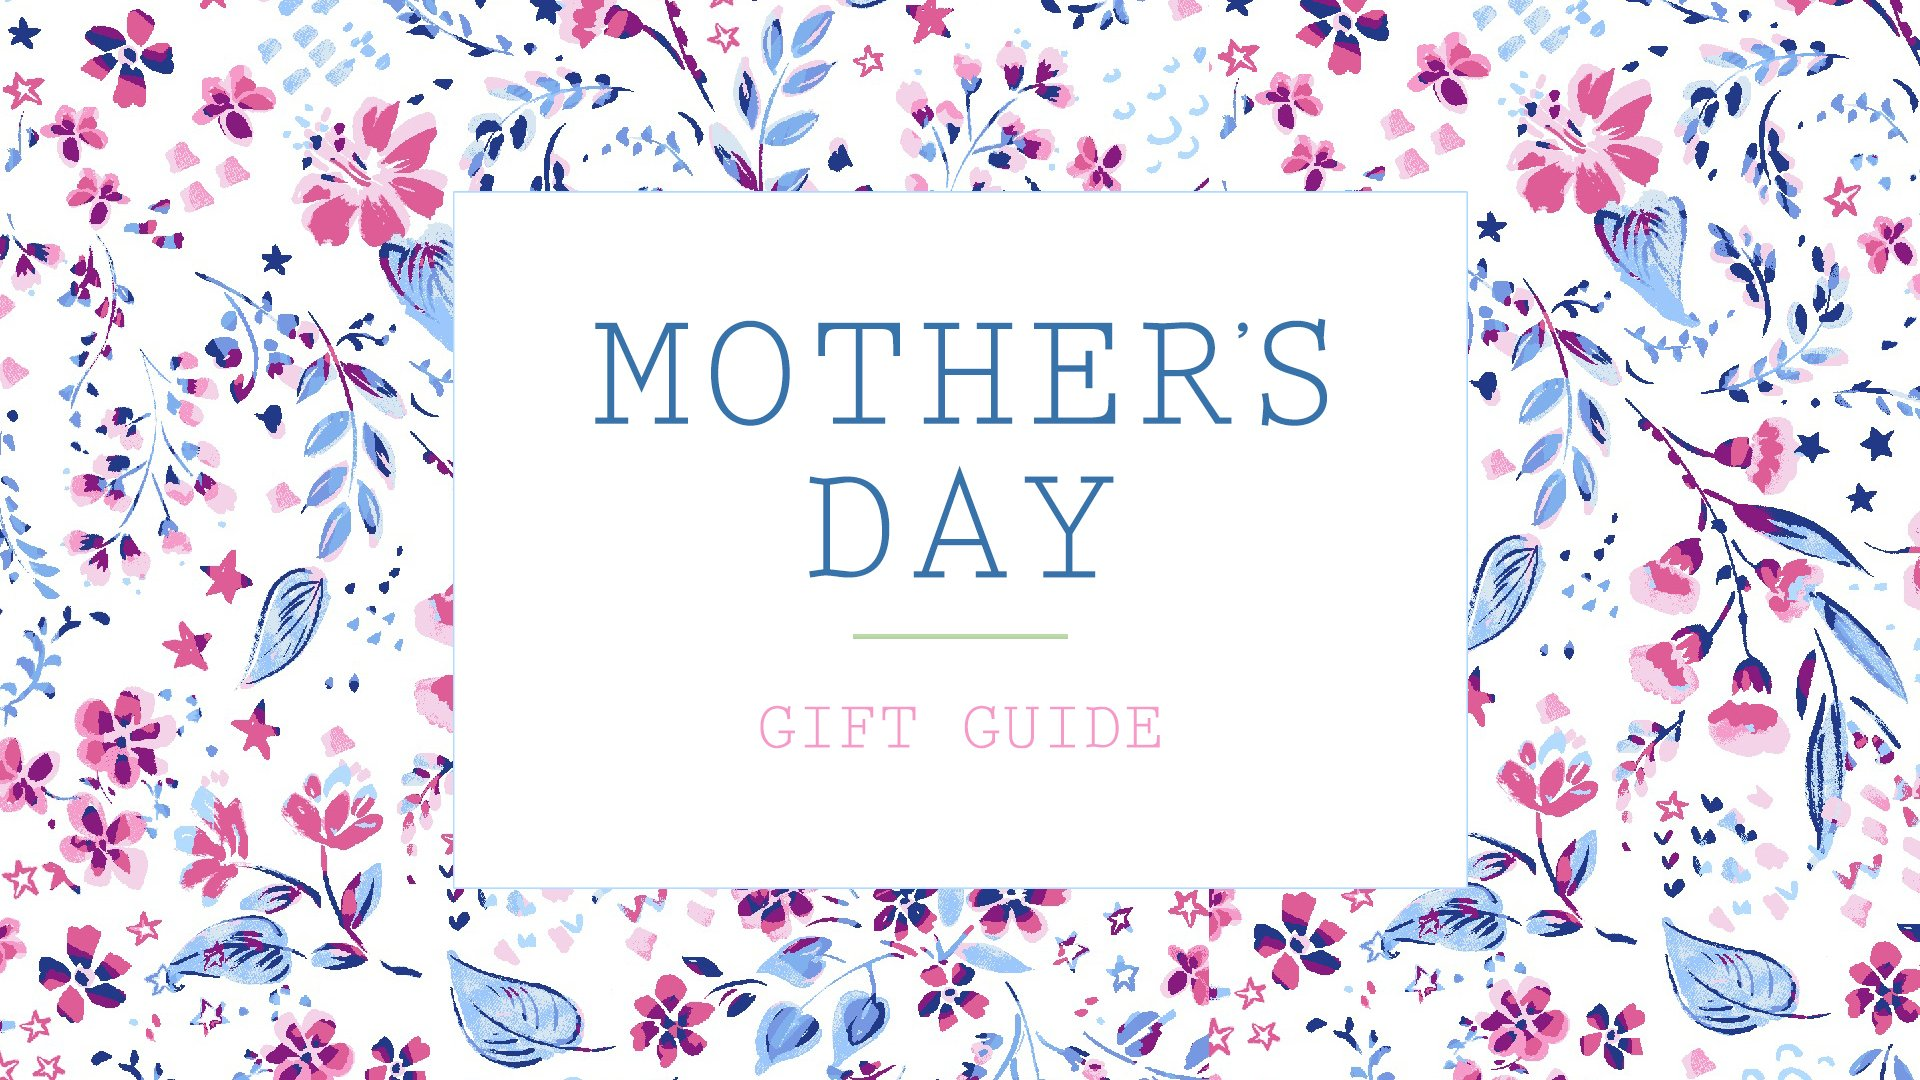 CH mother's day homepage banner 1